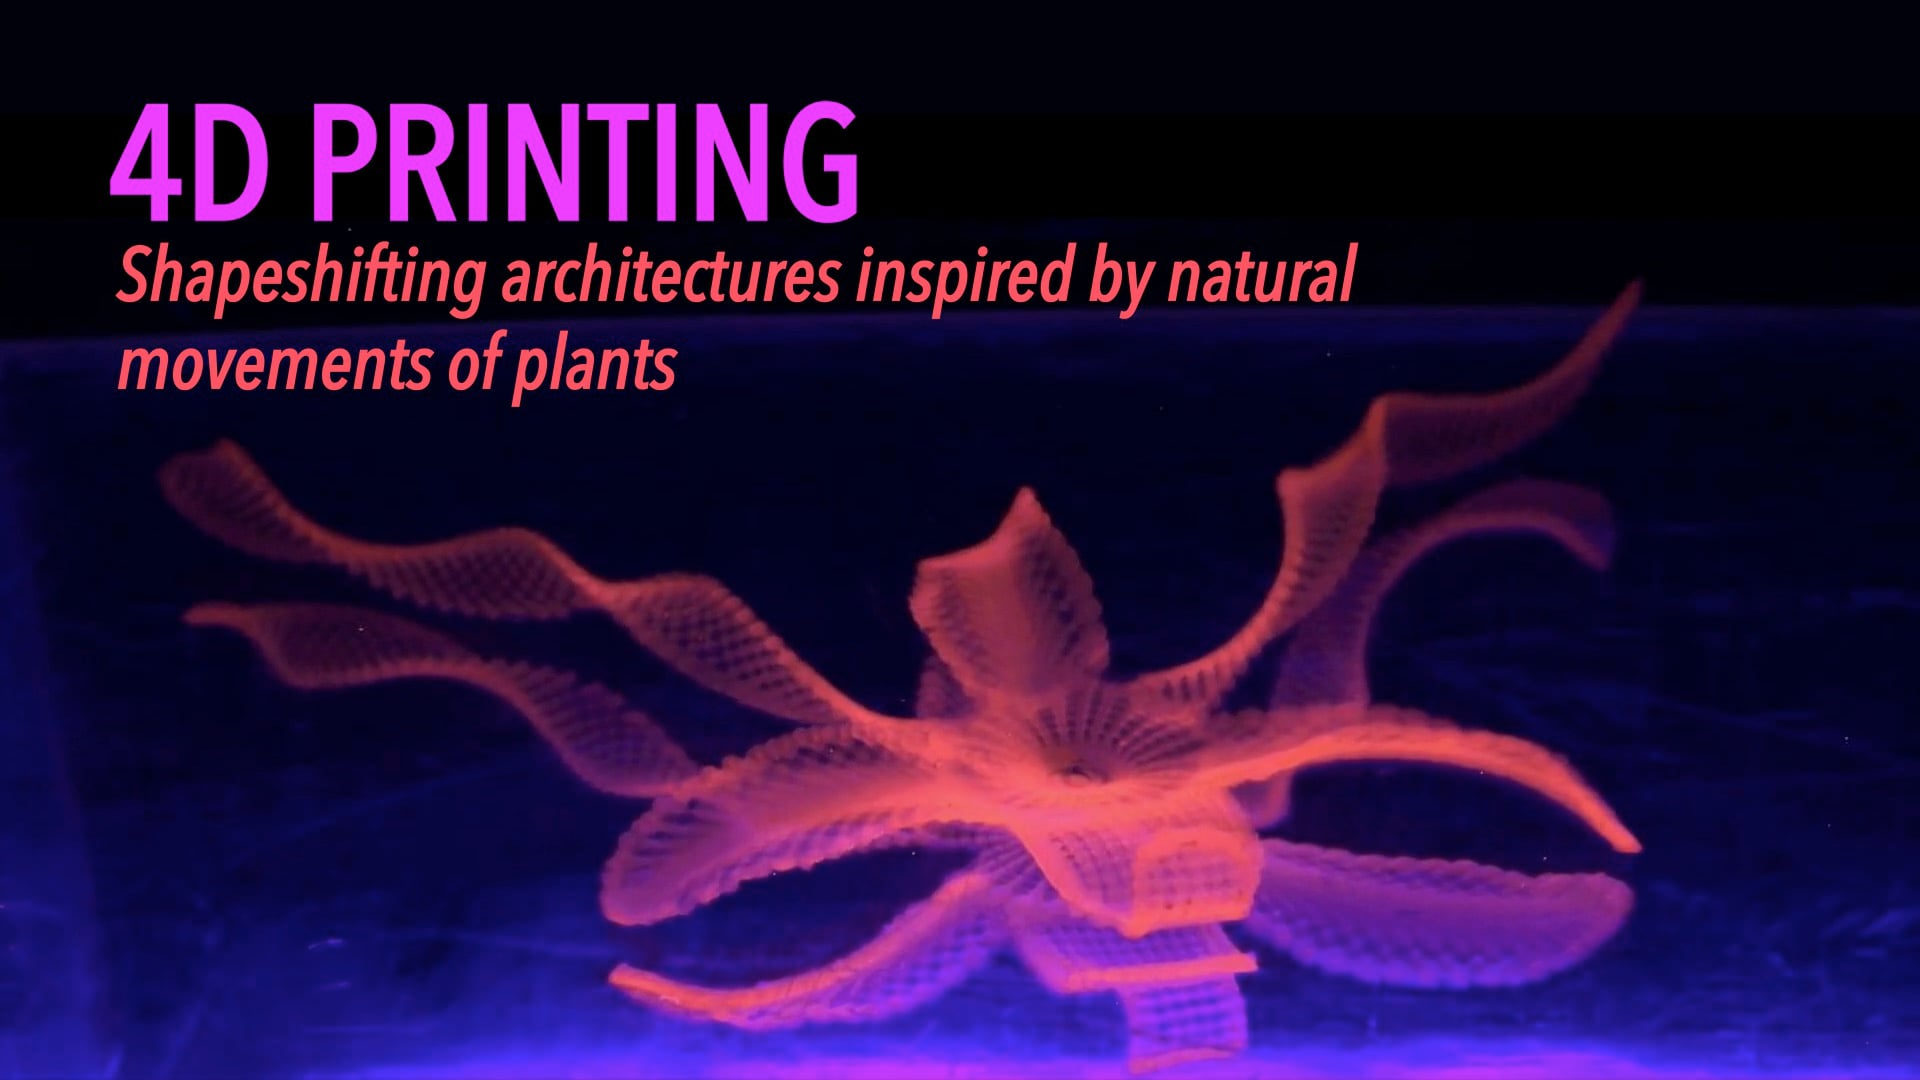 4D Printing: Shapeshifting Architectures